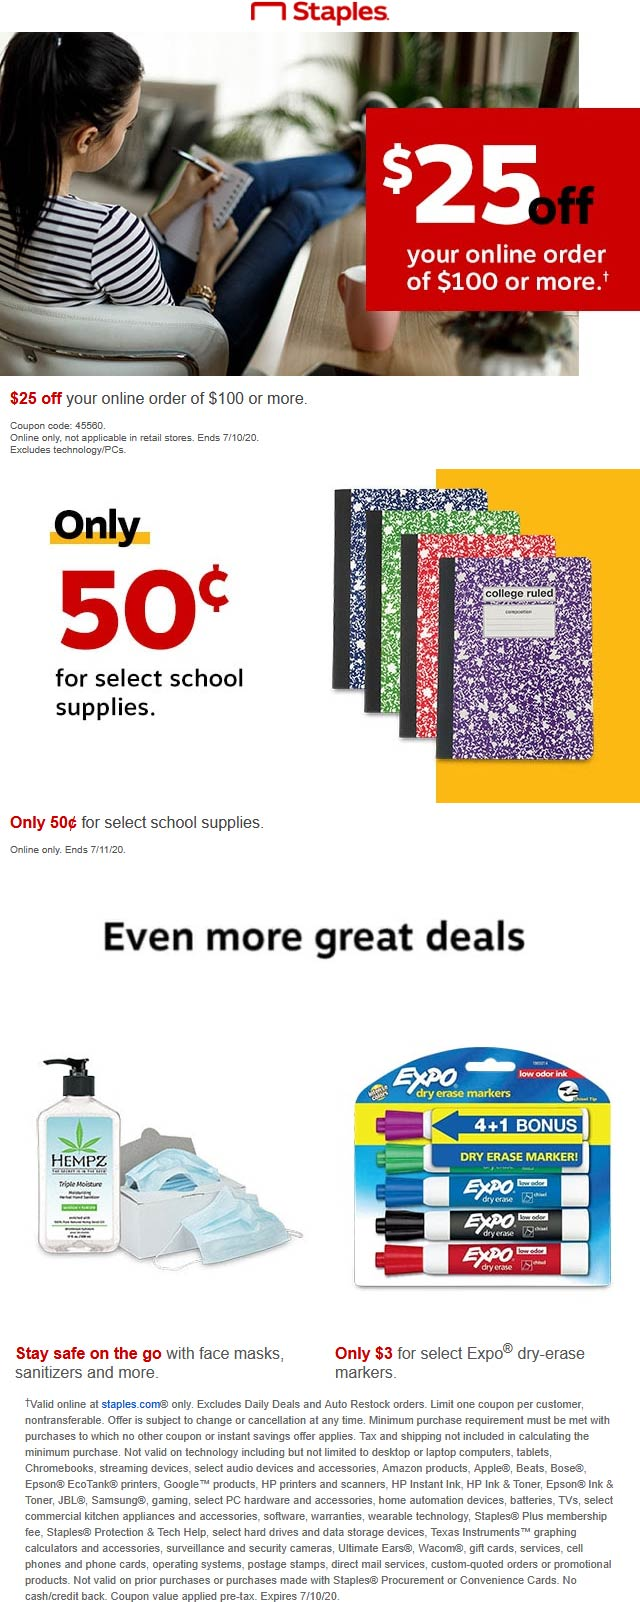 November 2020 10 Off 25 On School Office Supplies At Amazon Amazon Coupon Promo Code The Coupons App